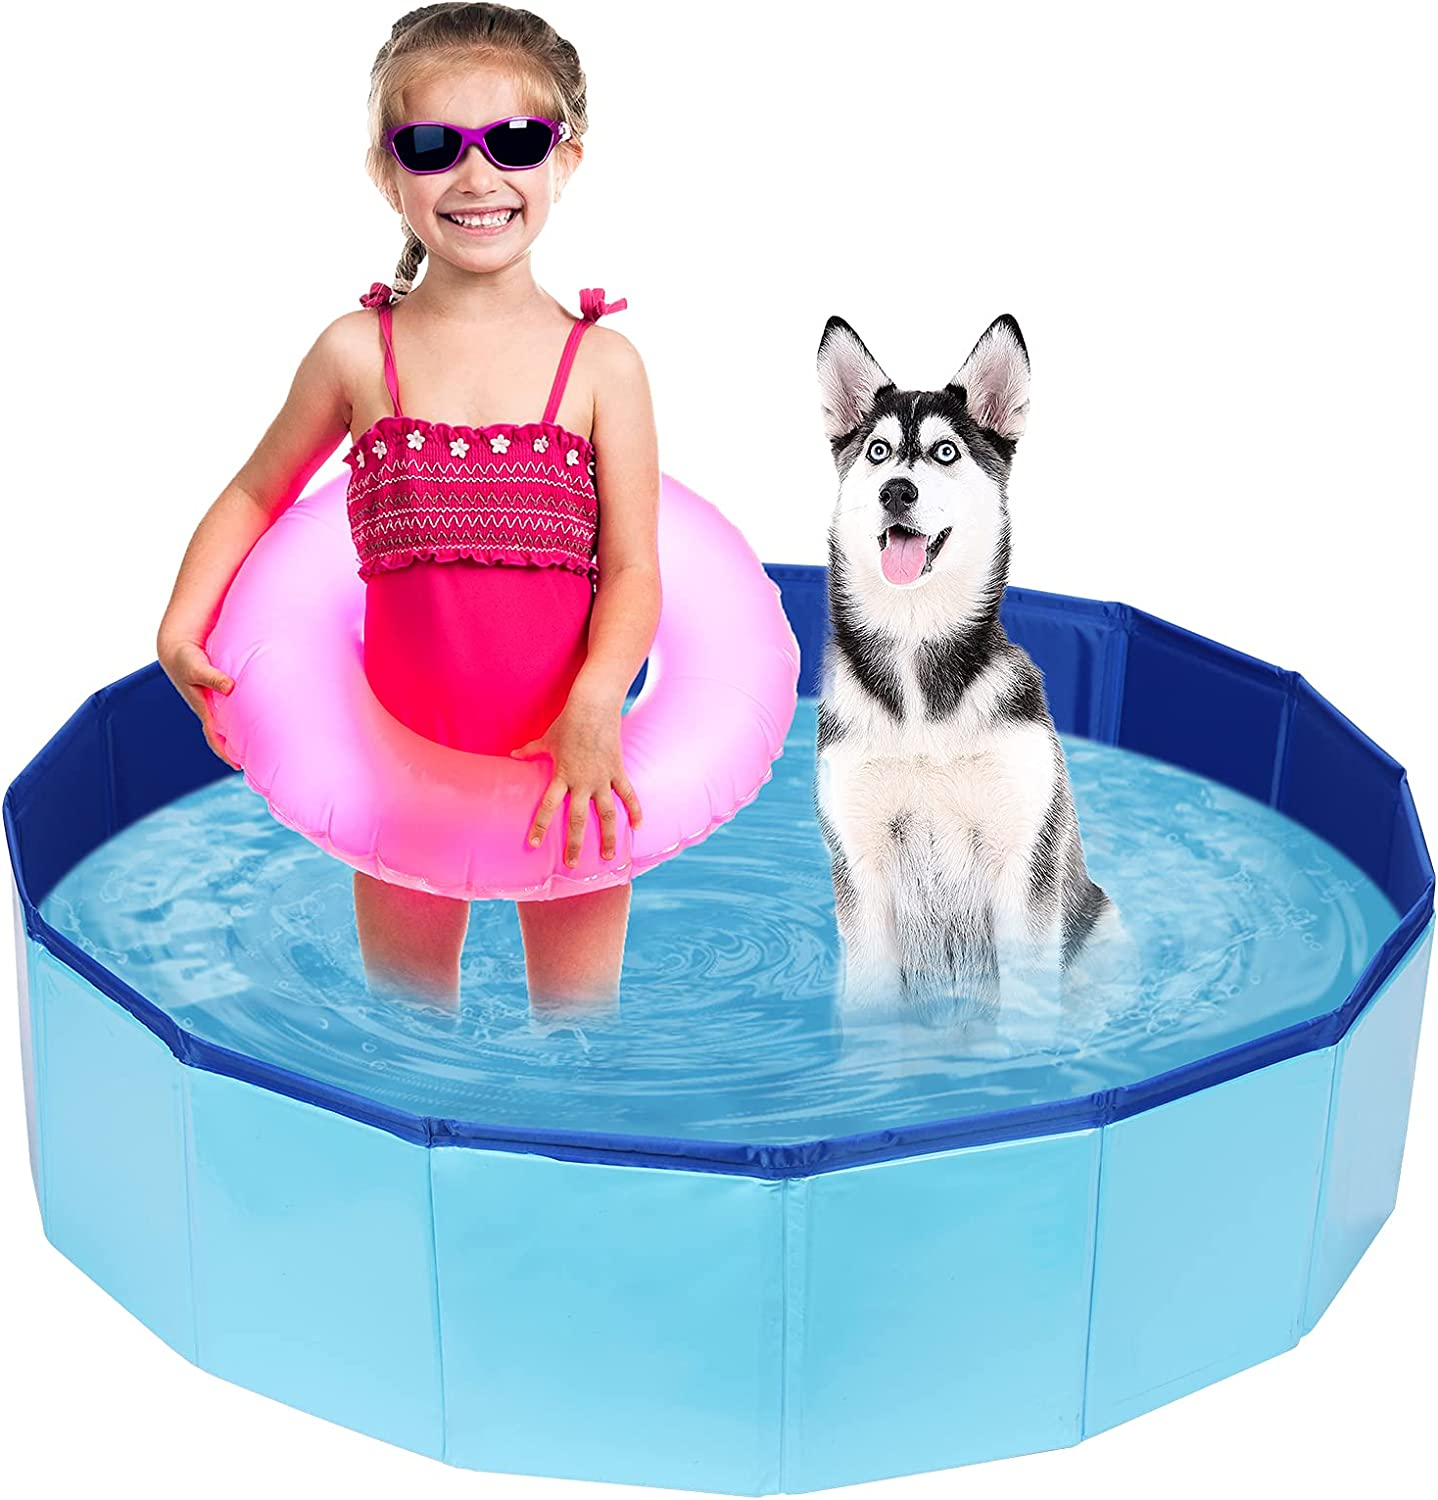 PVC Pet Swimming Pool Portable Bathtub Collapsible Water Pond Pool Foldable Dogs Bathing Tub Garden Pool Cat Puppy Shower Spa Kiddie Pool for Kiddies Pets to Swim and Bath (39.3